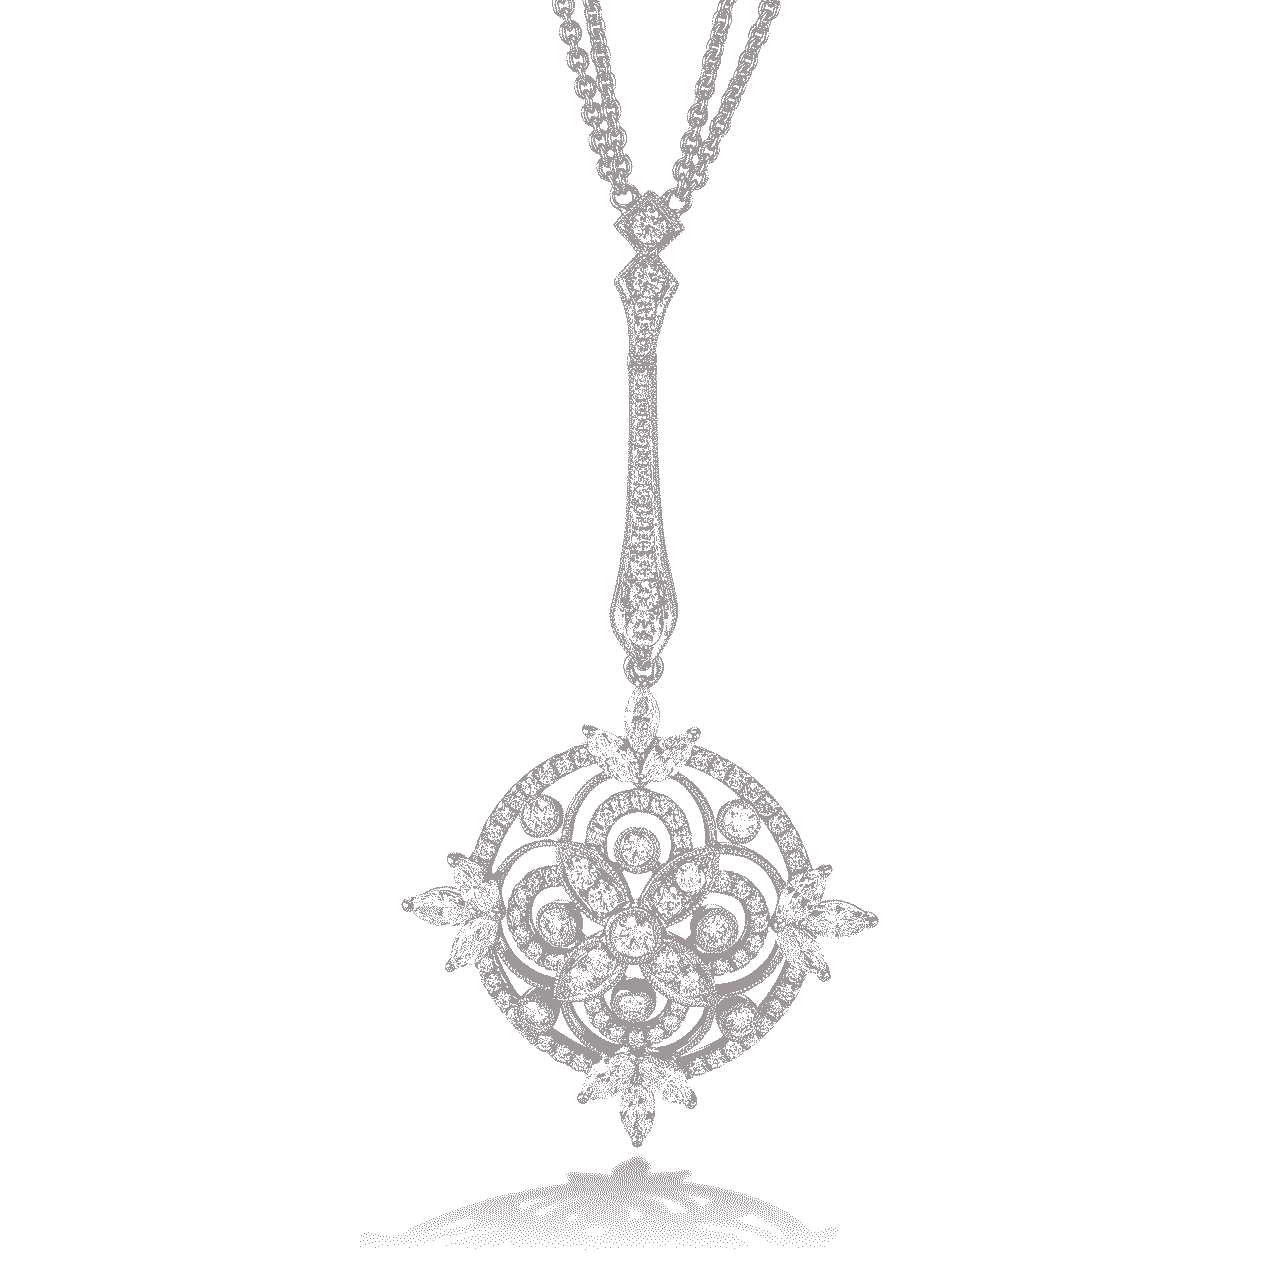 Heritage 18K Gold And Diamond Sautoir Necklace – Hamilton Within Recent Diamond Sautoir Necklaces In Platinum (View 15 of 25)